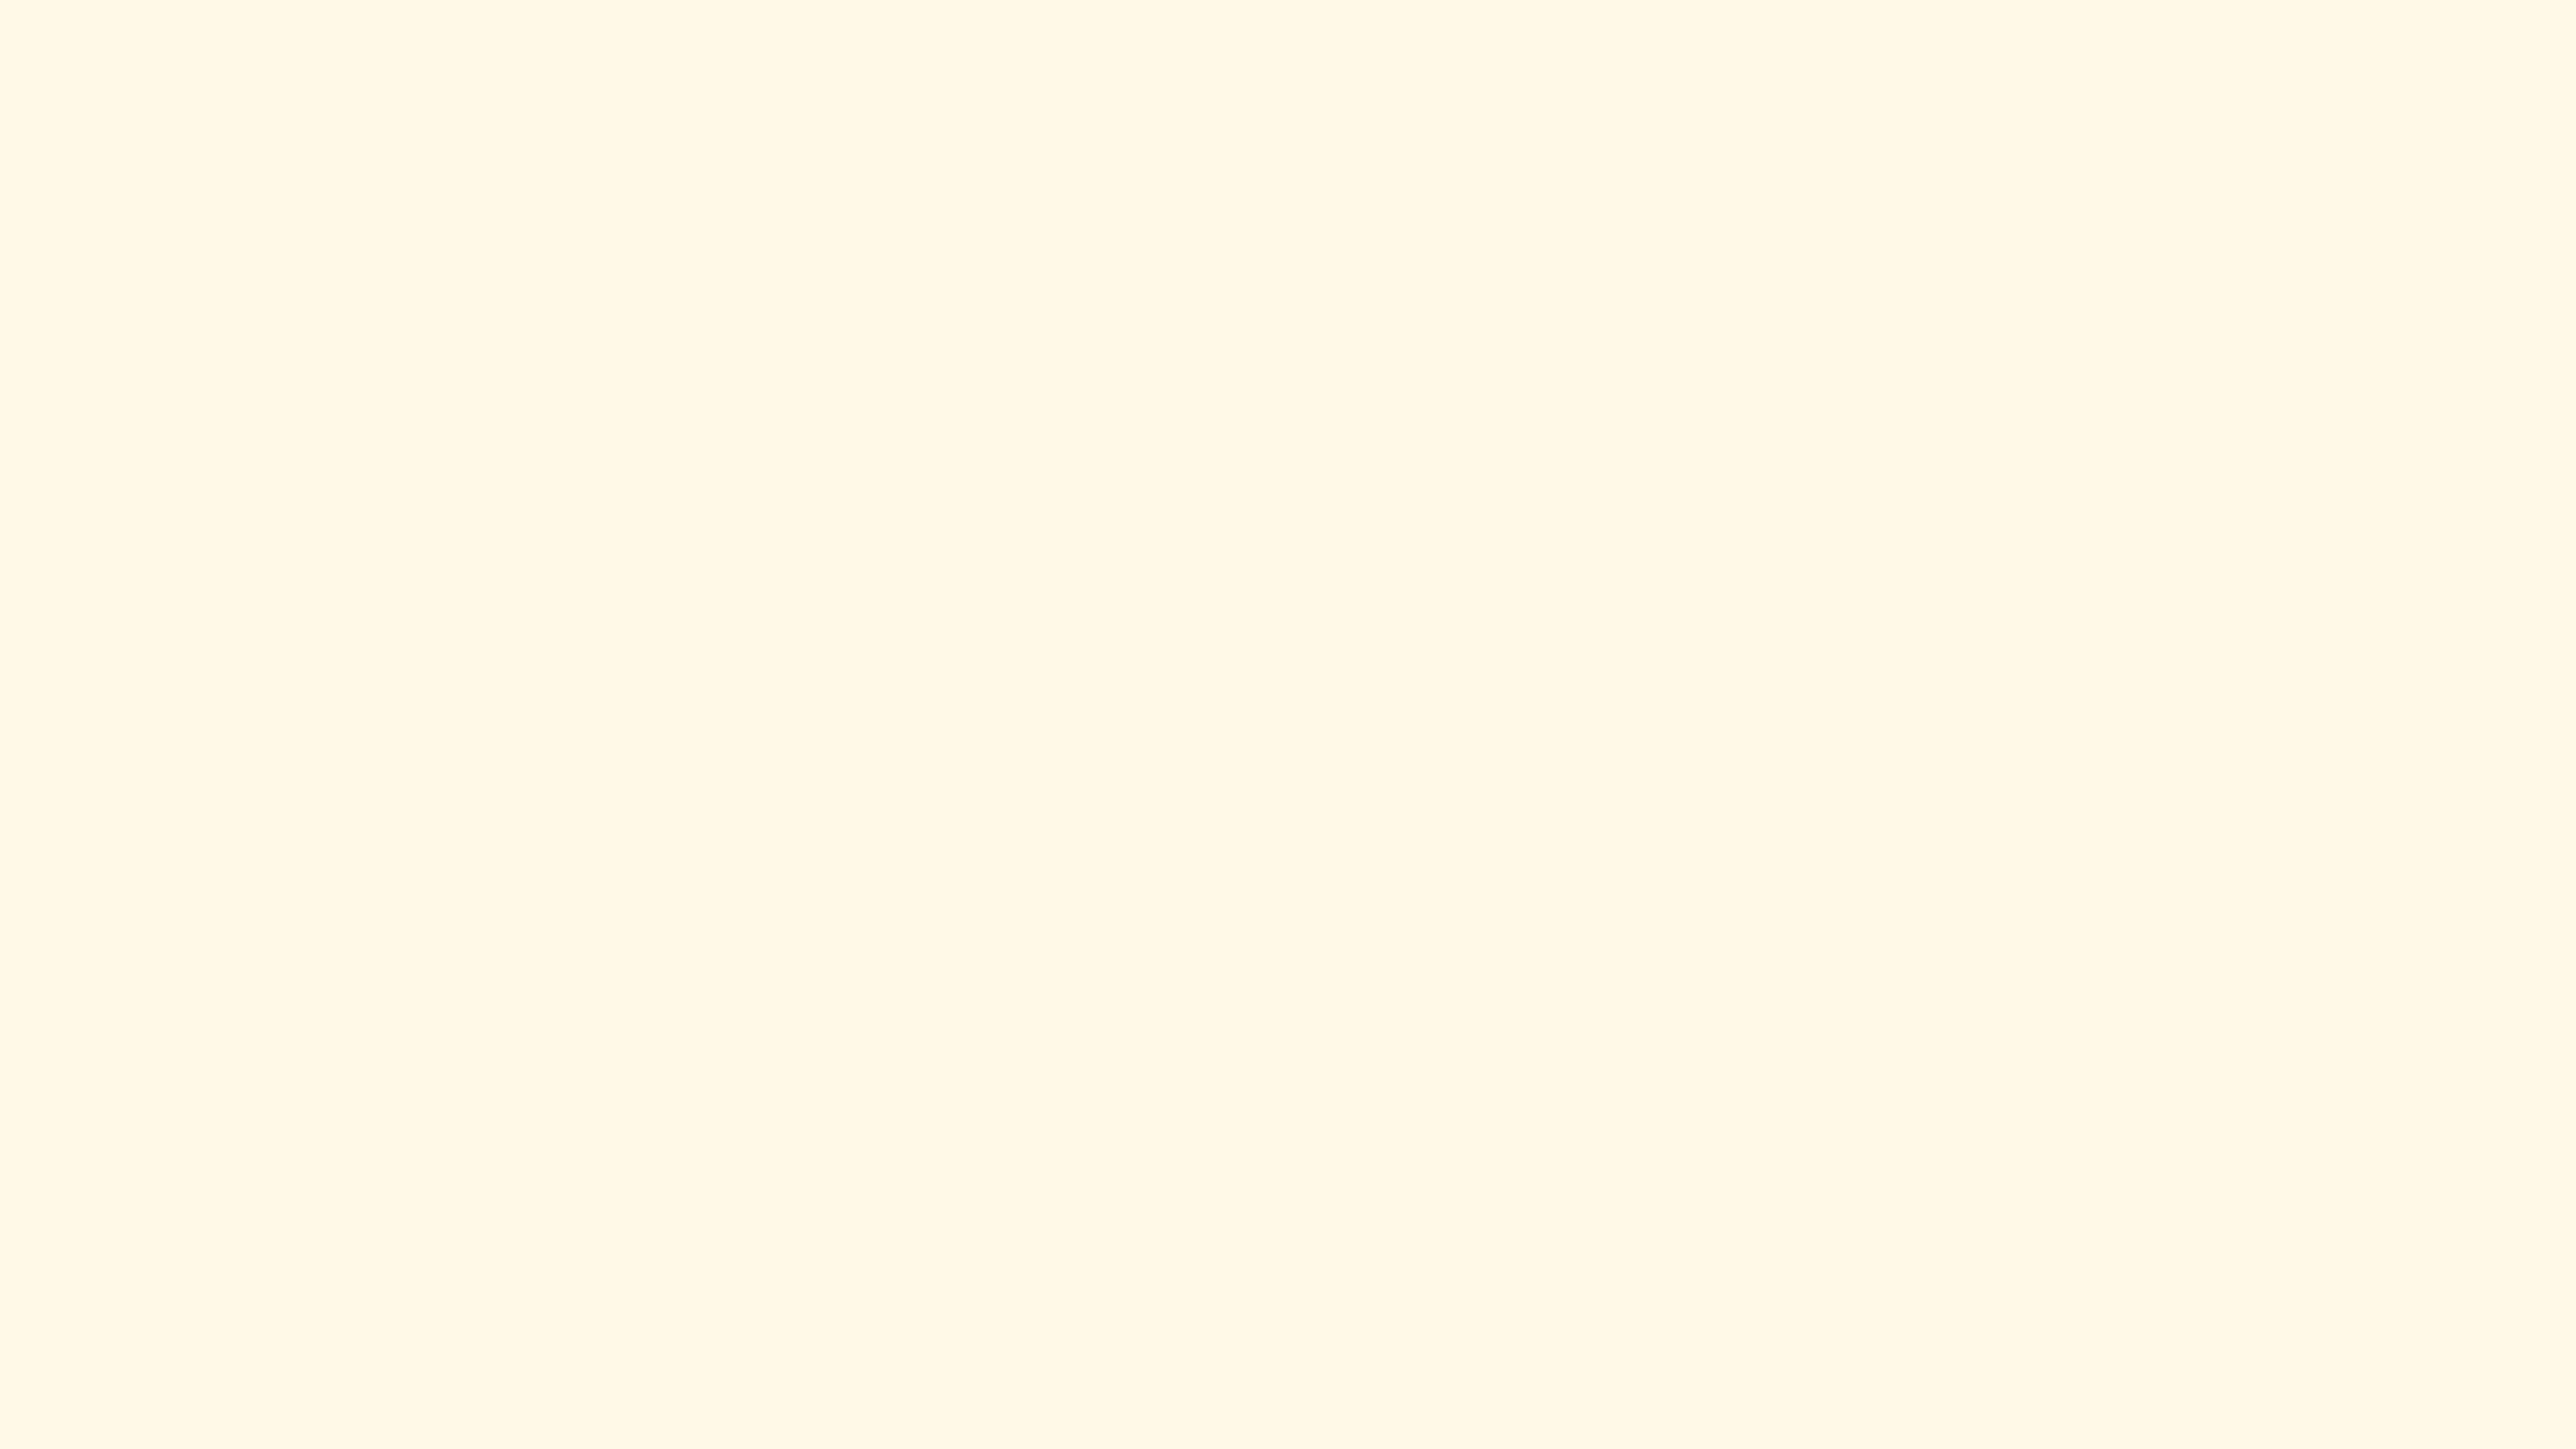 5120x2880 Cosmic Latte Solid Color Background